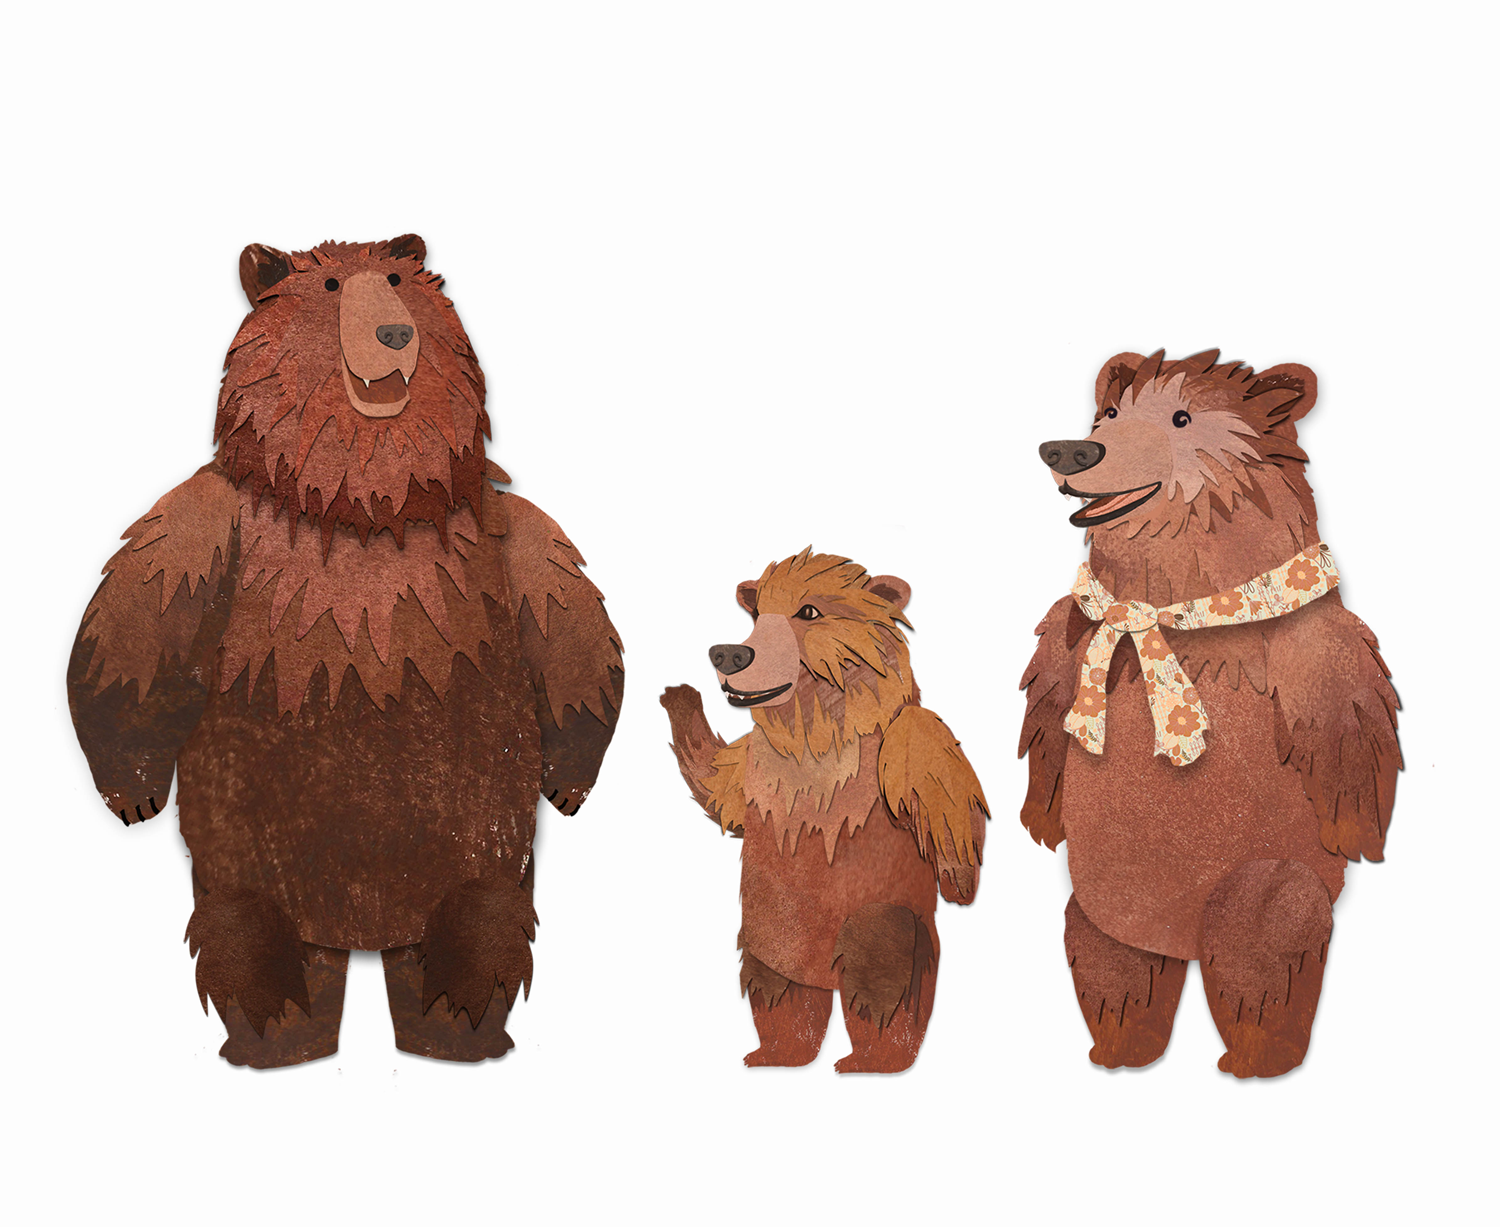 Alyssa Scott | BYU Illustration - Three Bears PNG